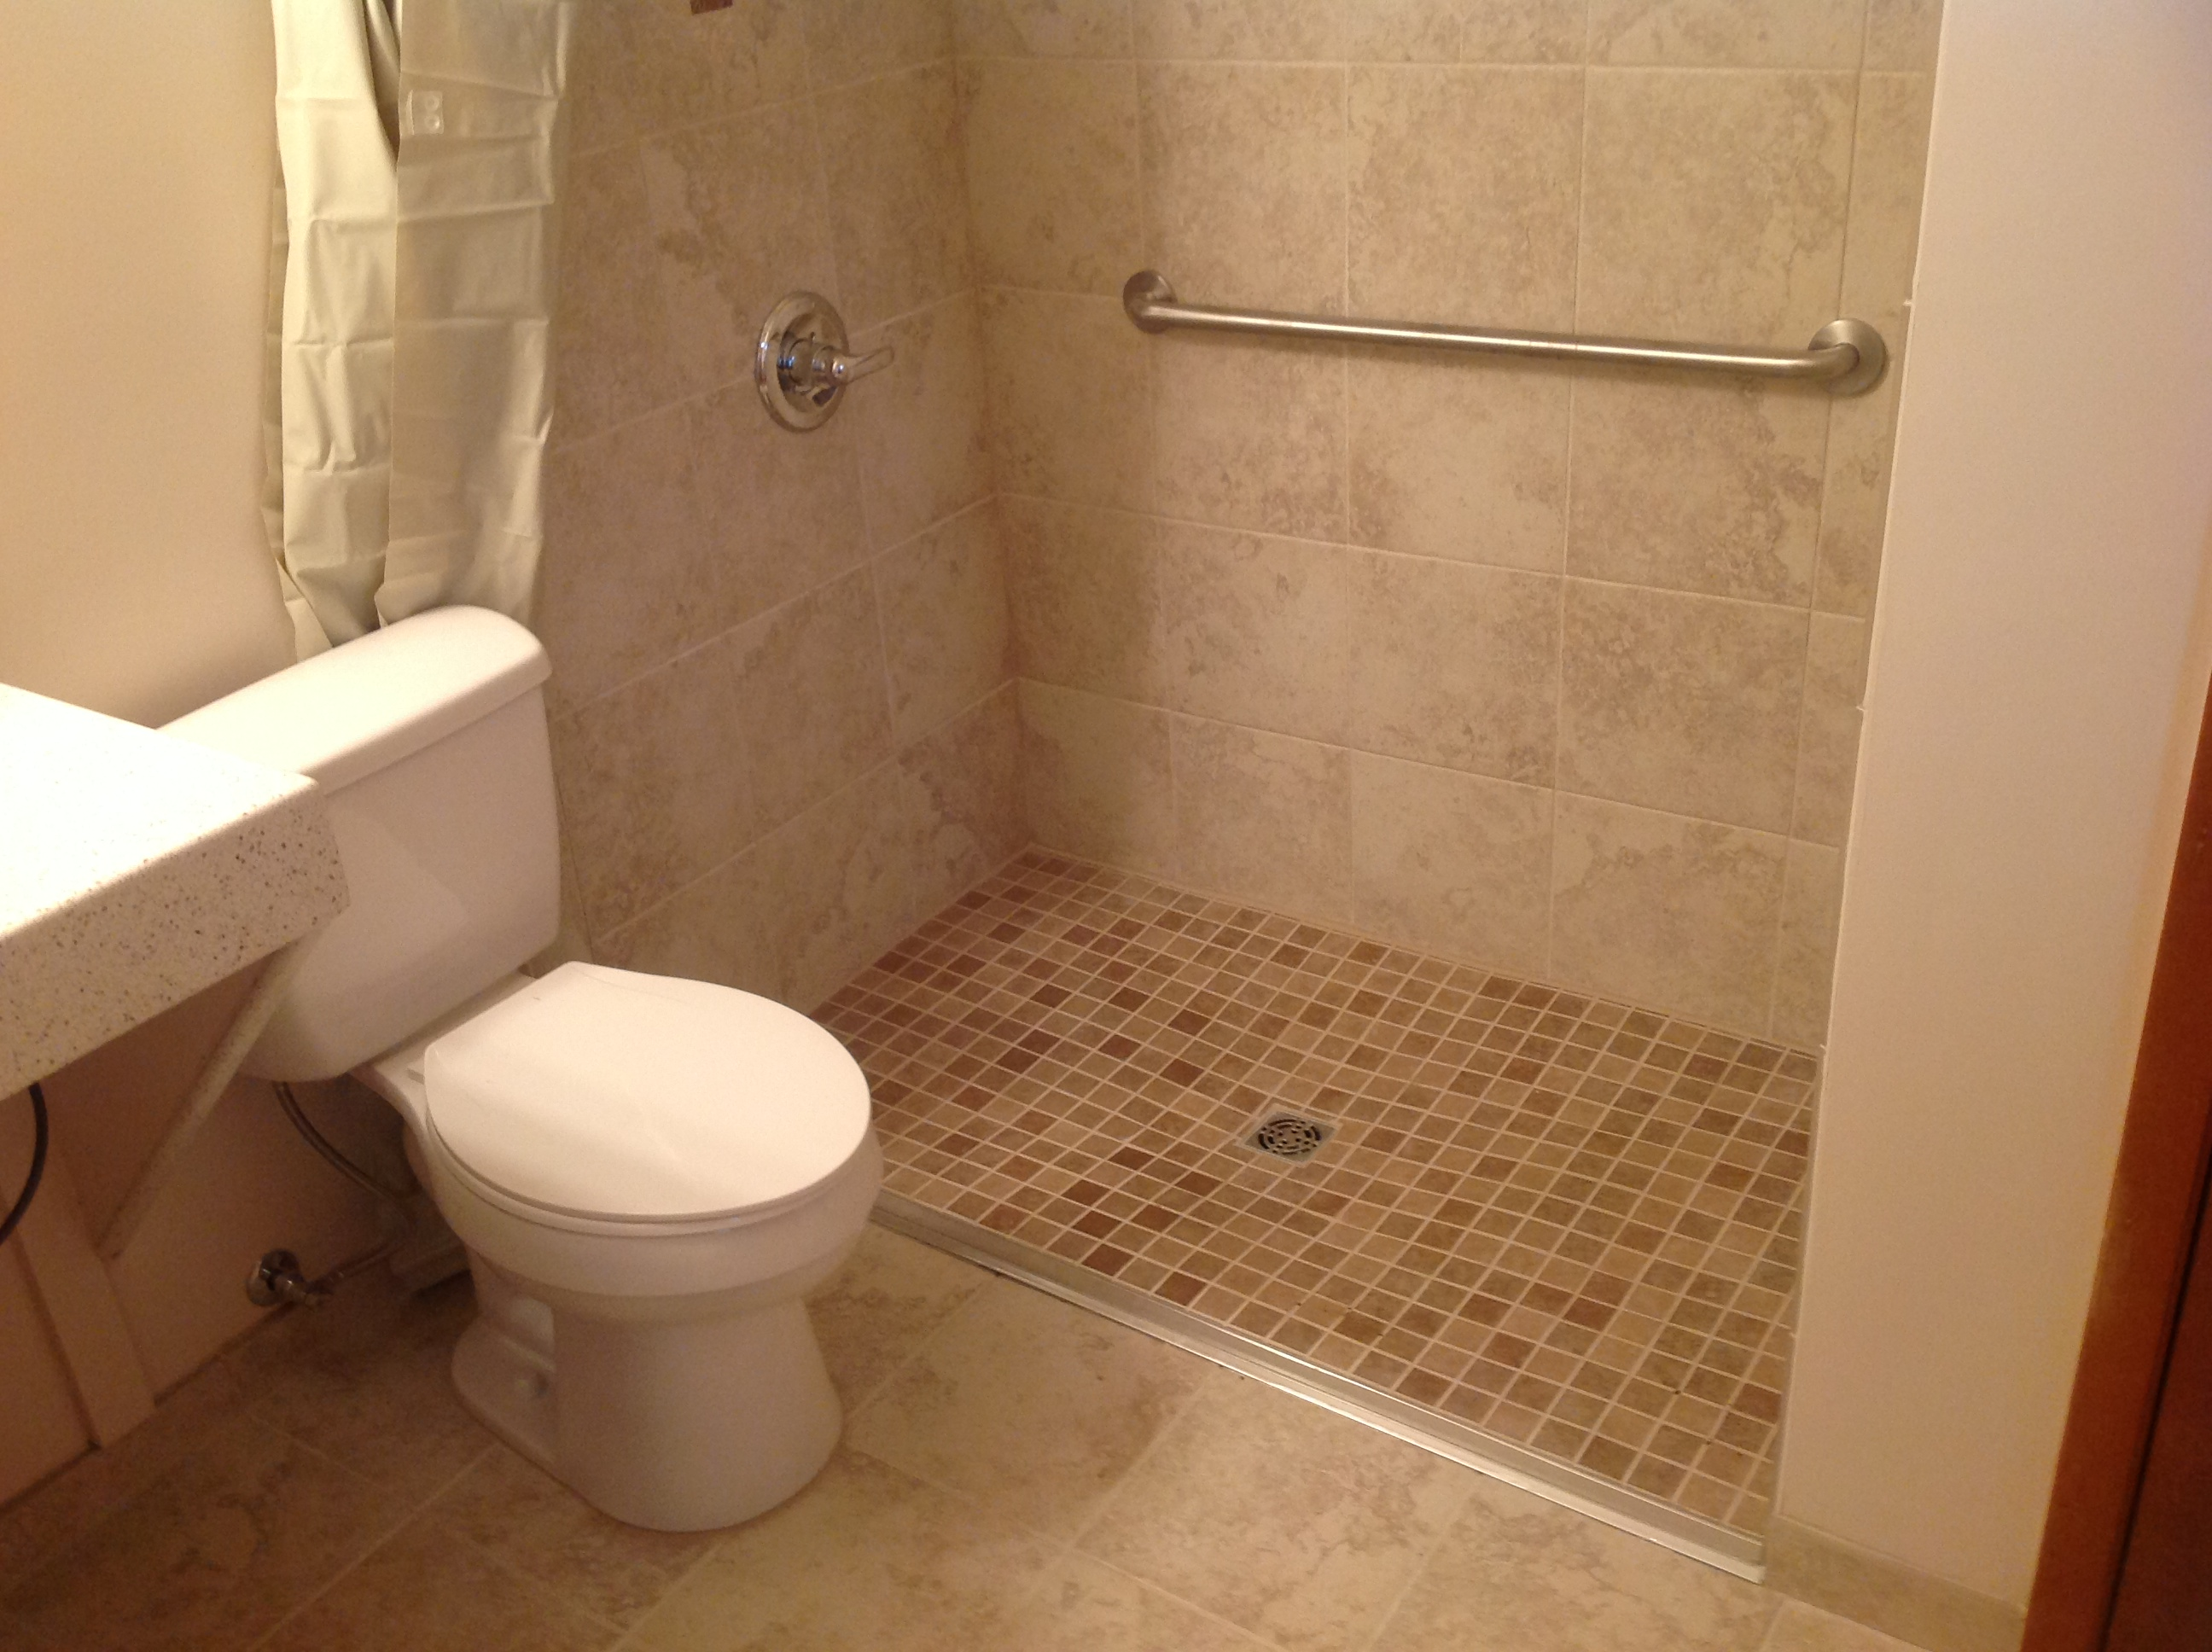 Delicieux Search. Search For: Handicap Accessible Bathroom